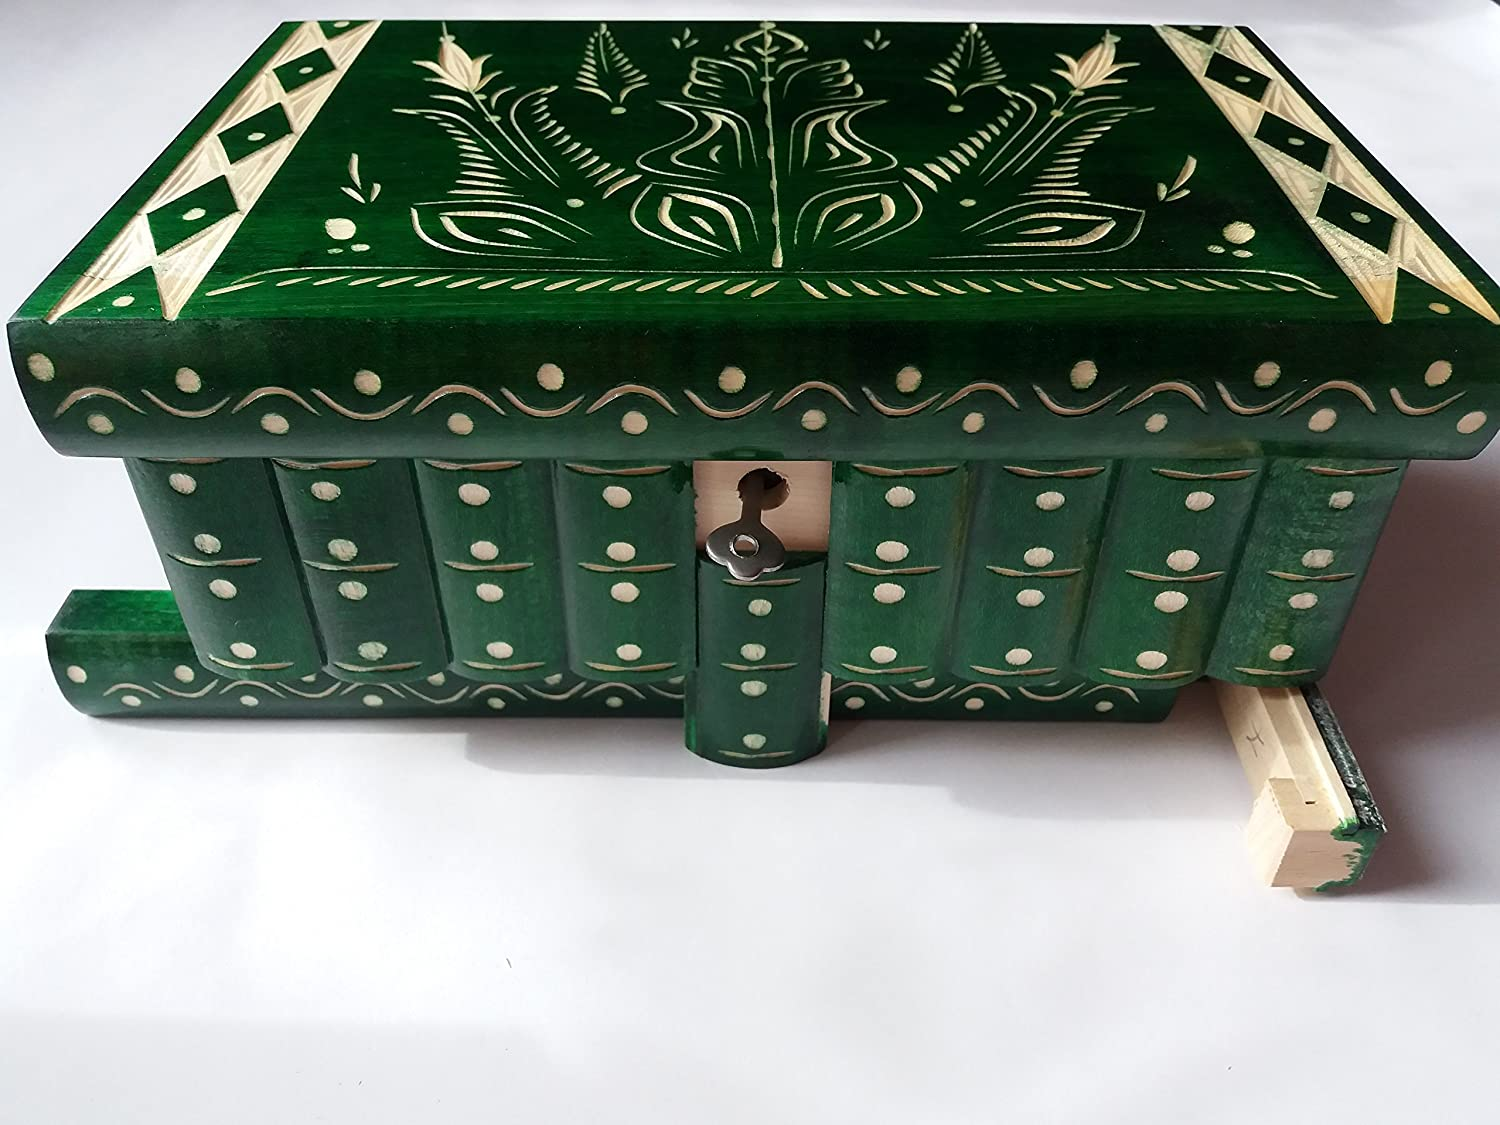 Huge puzzle box magic jewelry box premium treasure gift new very big box green handmade mystery case carved wooden storage brain teaser